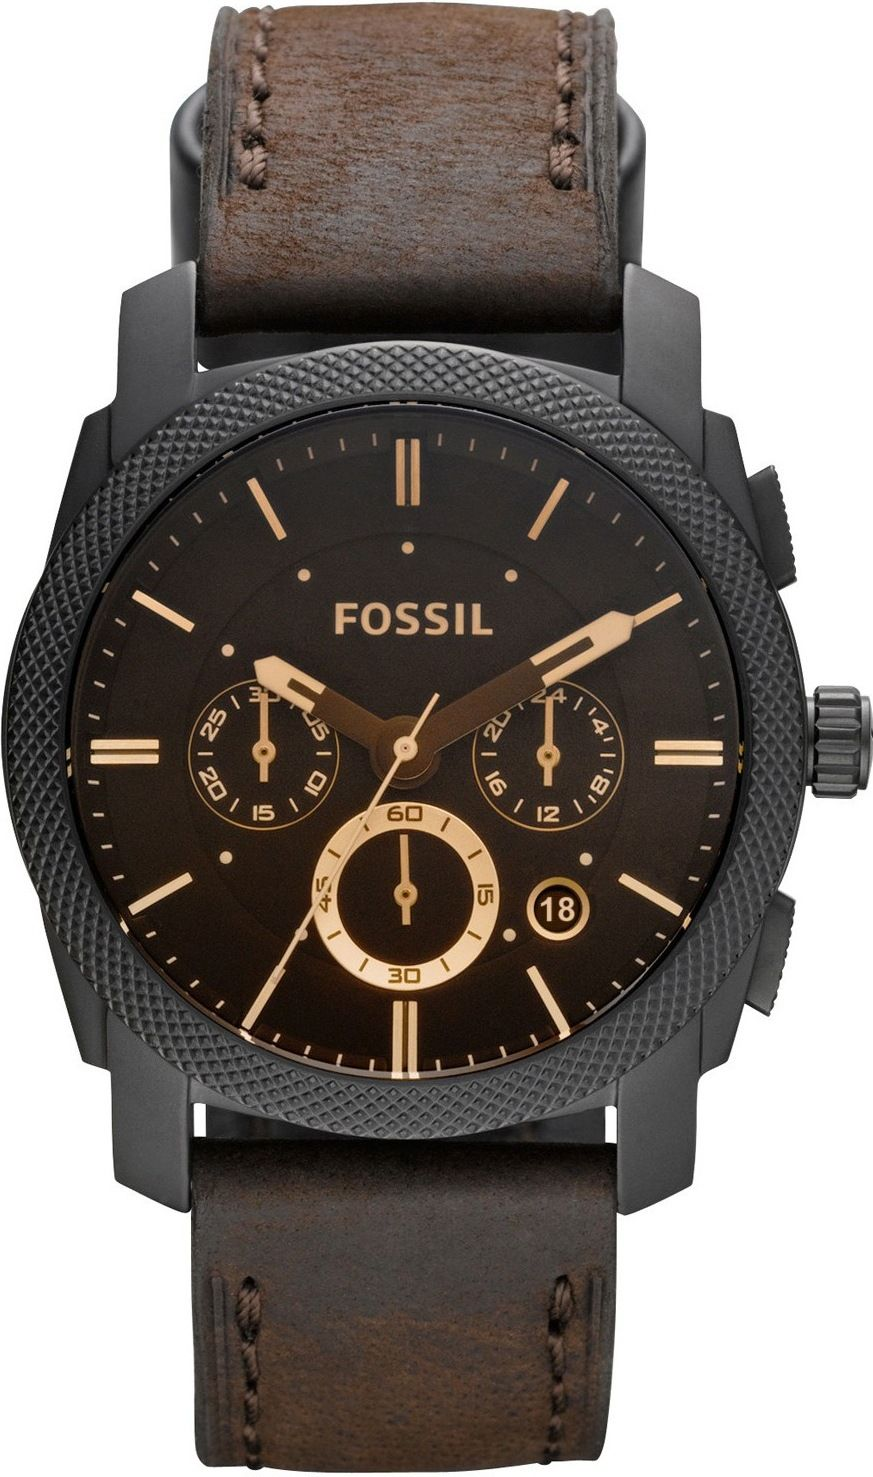 27b55f20214 Fossil Men s FS4656 Leather Crocodile Analog with Brown Dial Watch     120.00   Fossil Watch Men